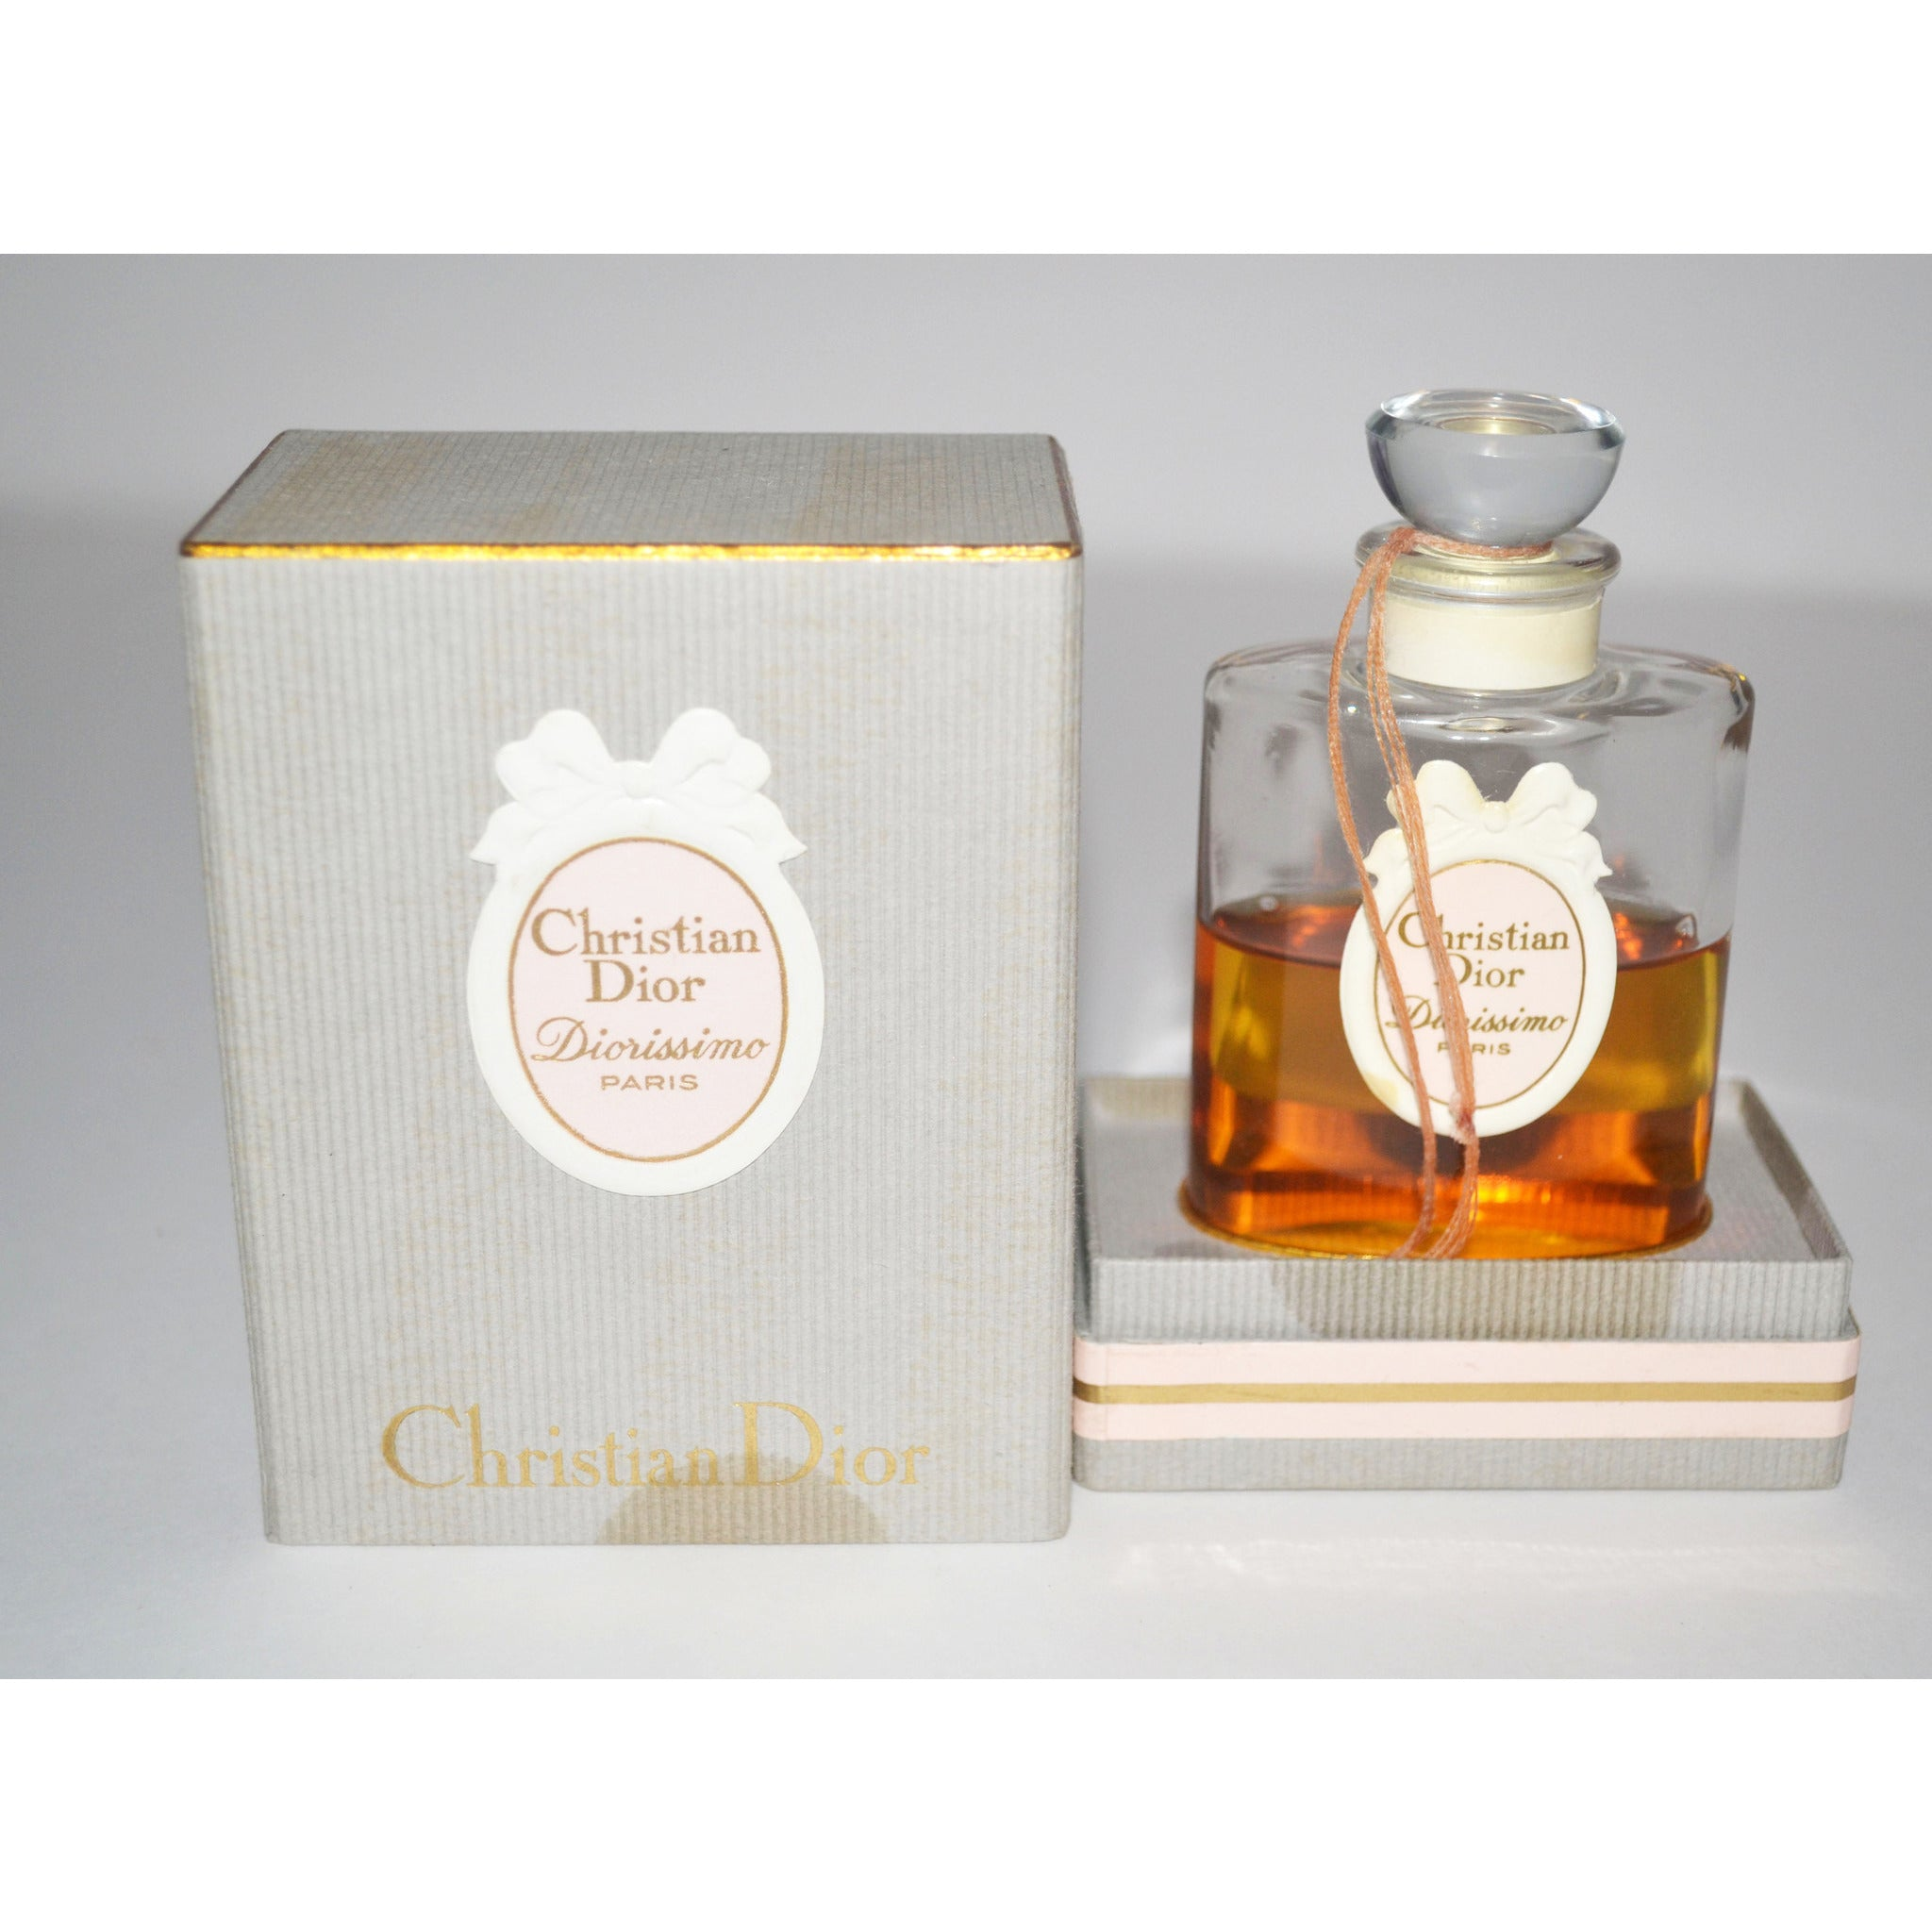 Vintage Diorissimo Parfum By Christian Dior